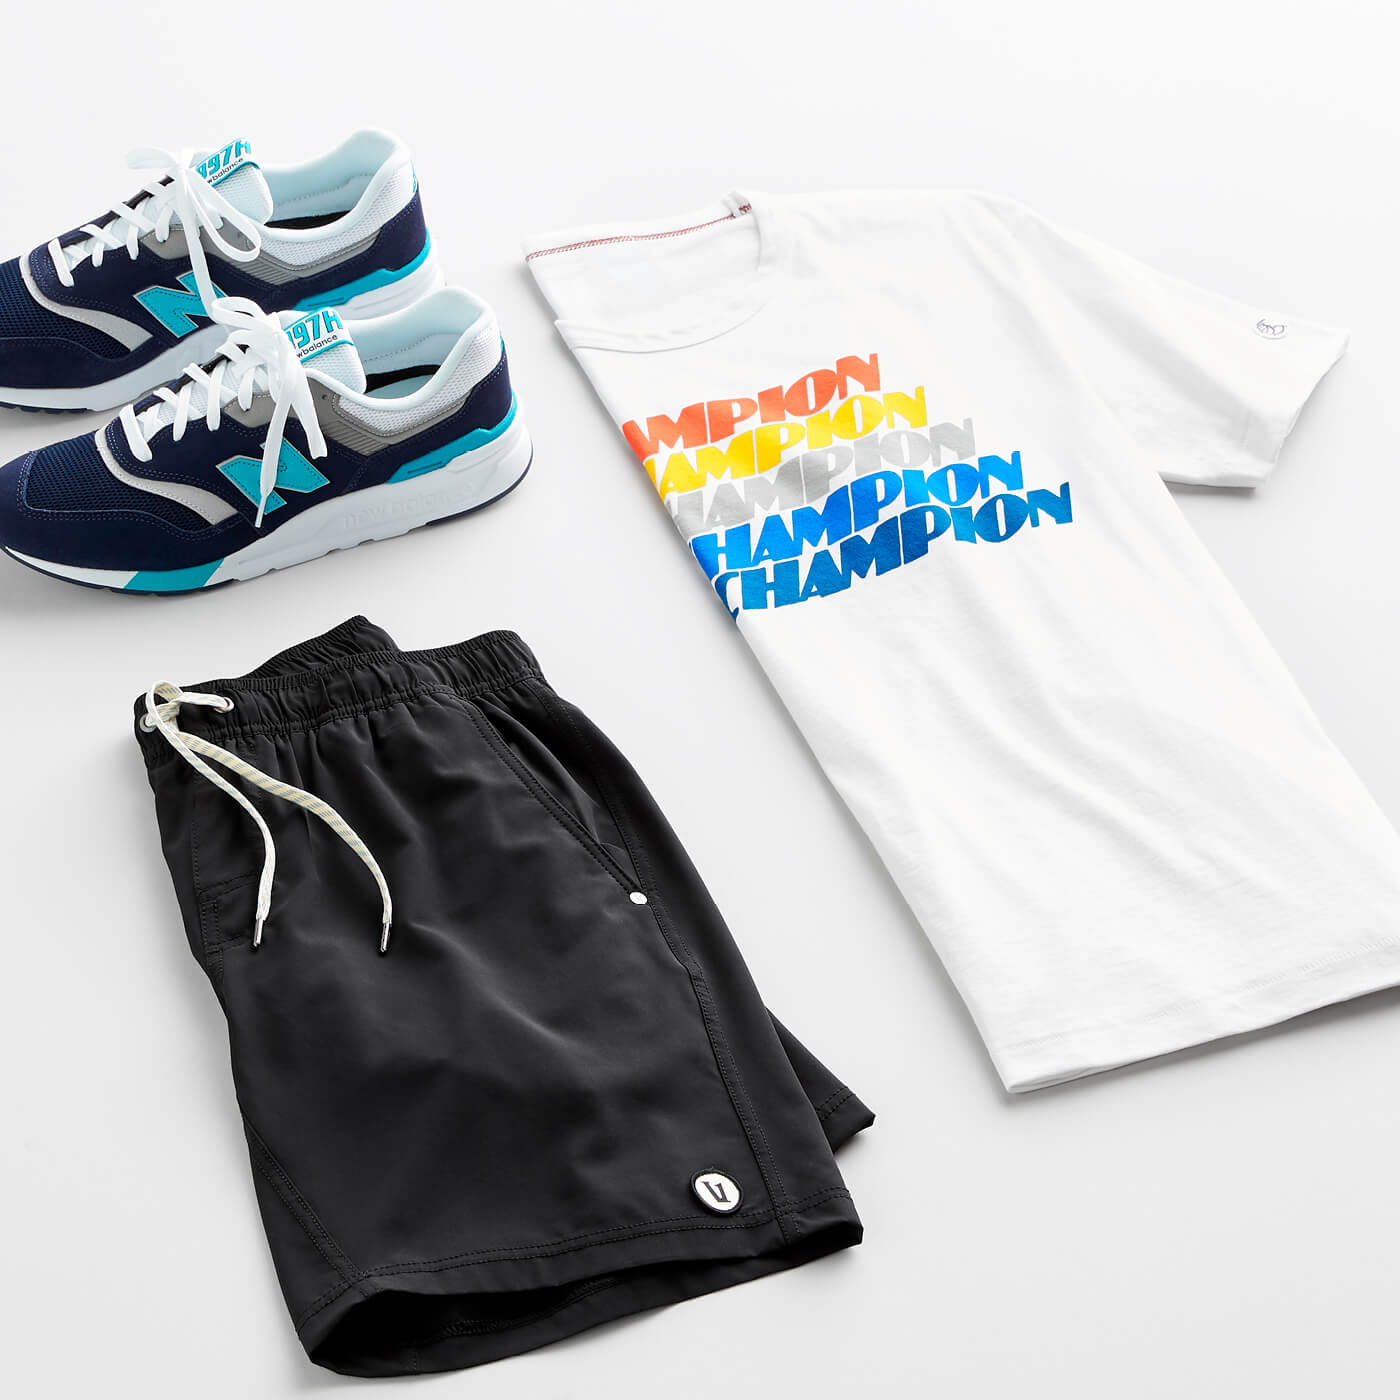 men's black boardshorts, graphic tee and sneakers